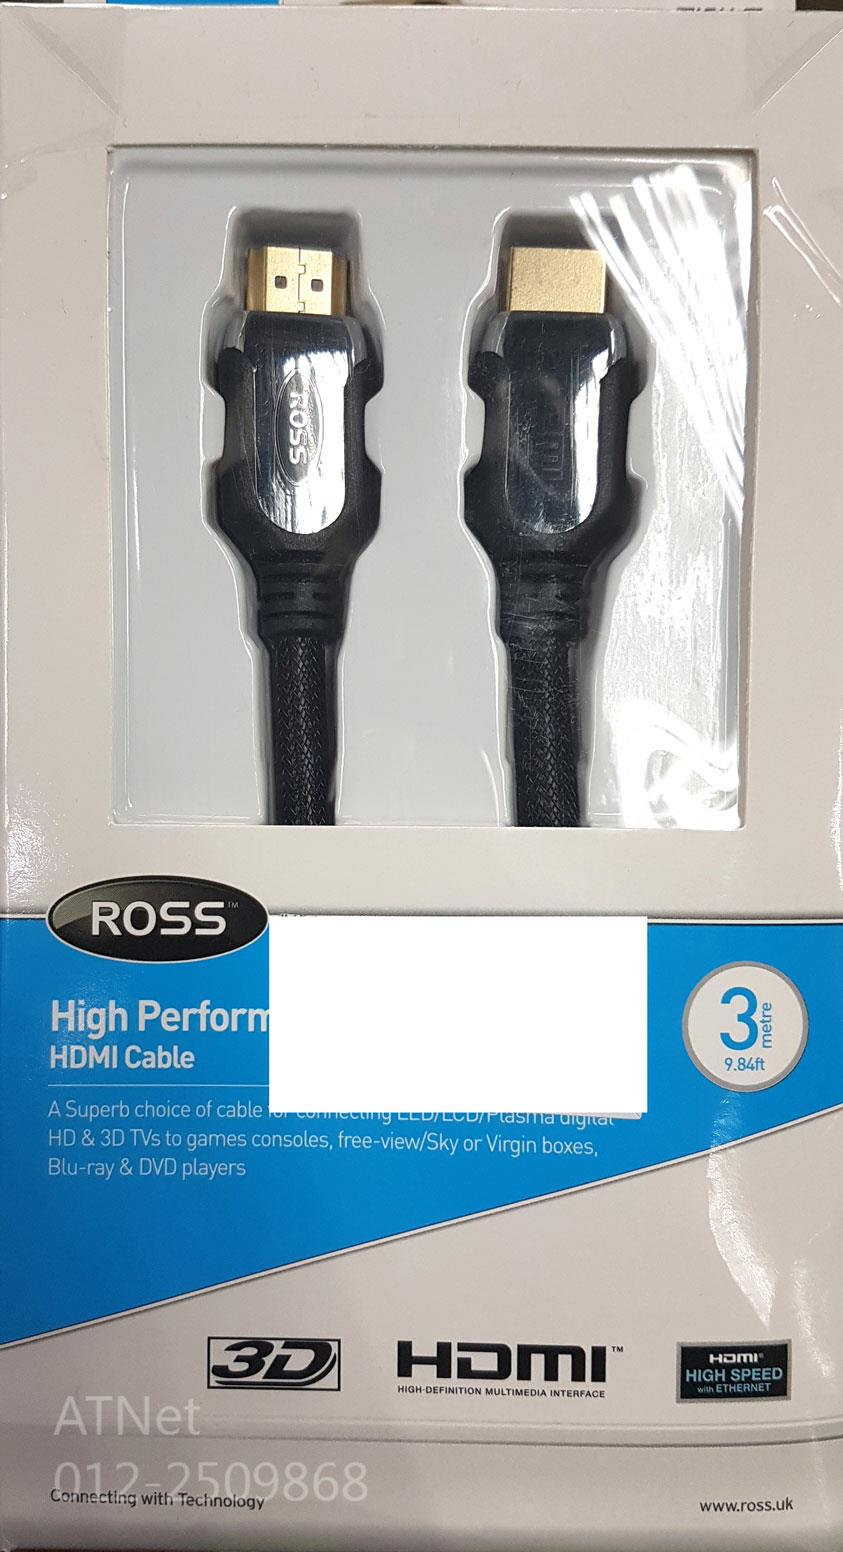 ROSS HIGH PERFORMANCE HDMI CABLE 3.0M (HPHDMI3)